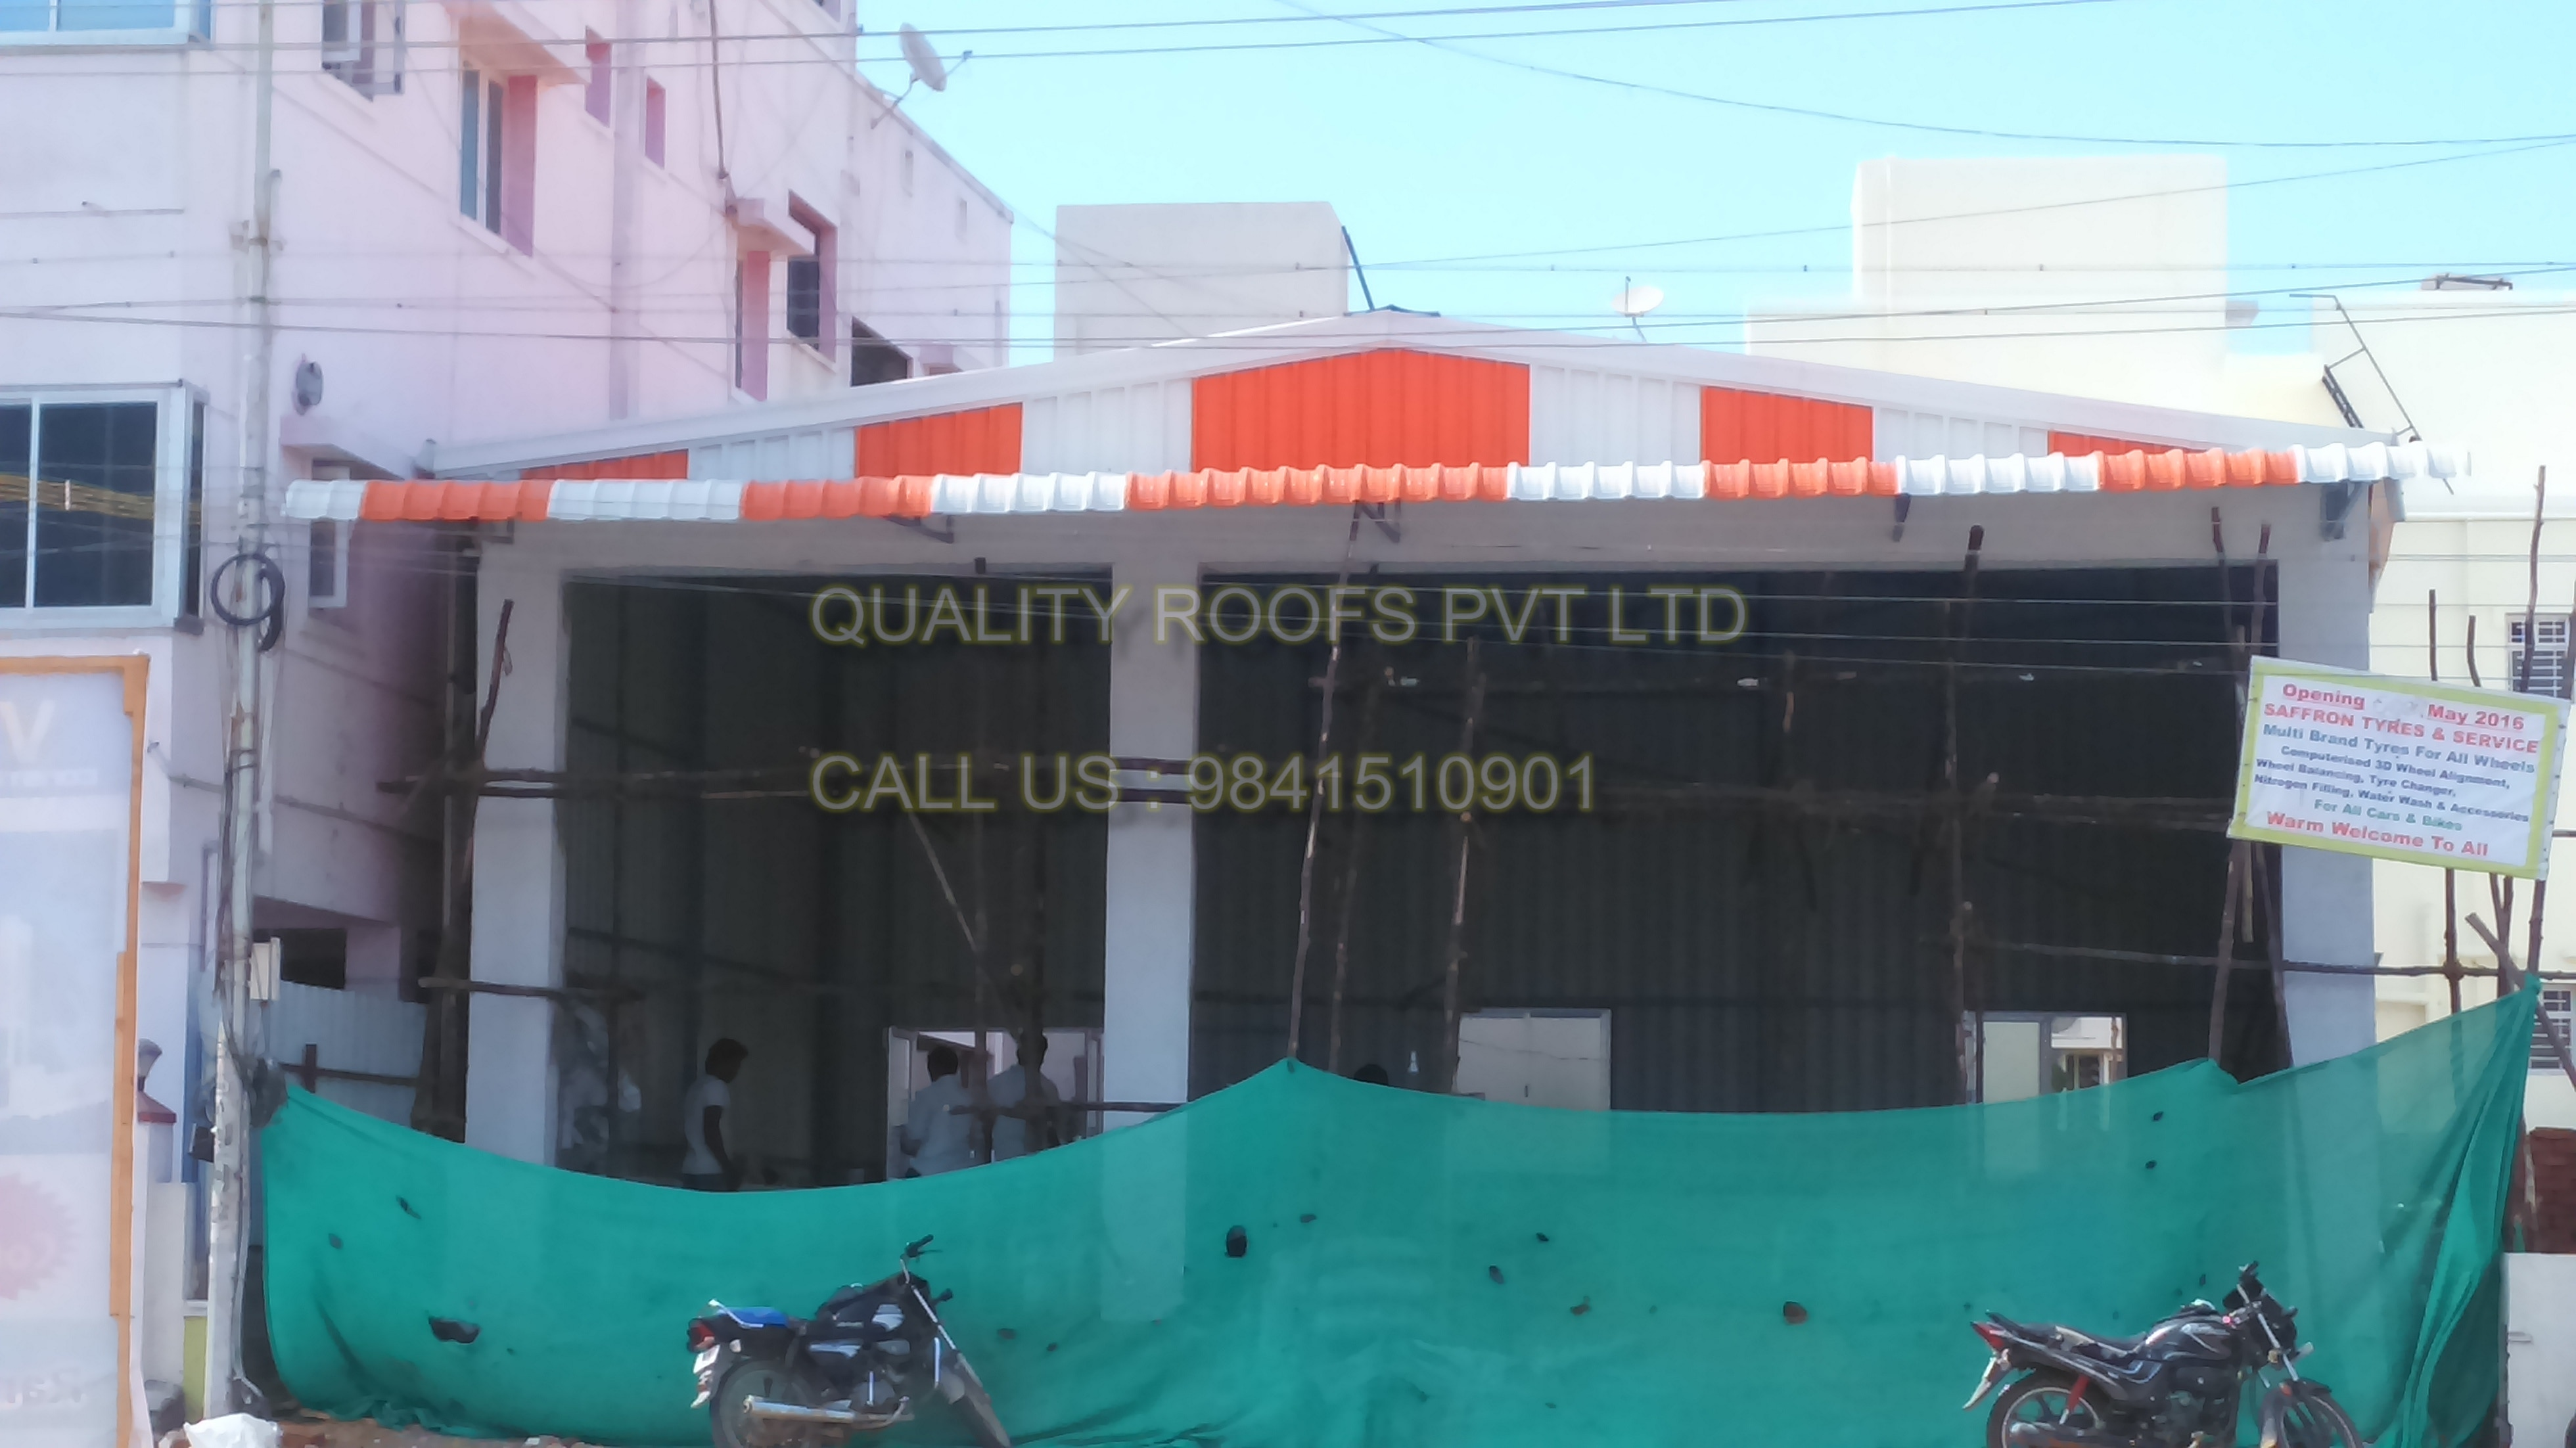 Metal Roofing Contractors In Chennai<br/>   We are the best Metal Roofing Contractors In Chennai. We are providing a qualitative assortment of Metal Roofing Shed. This product is manufactured by our experienced professionals. The offered products are manufactured at our vendor's end by using high quality base material in adherence to international quality standards. We are the leading Roofing Companies In Chennai.